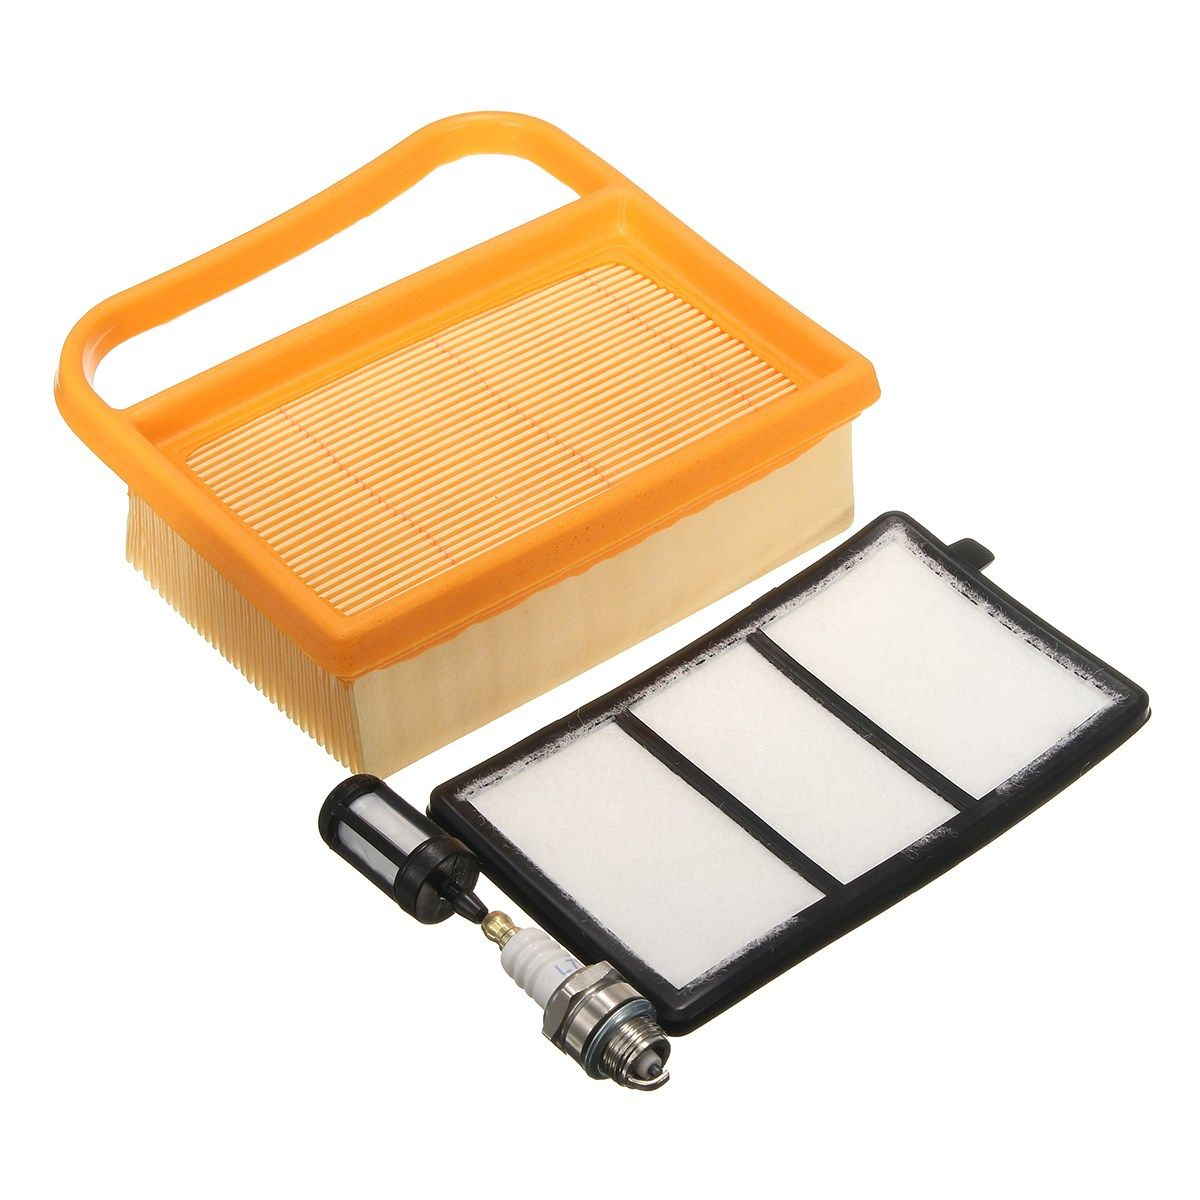 AIR FILTER CLEANER FUEL FILTER For SPARK/PLUG SET For STIHL TS410 TS 410 TS420 TS 420 SAWS COMBO 4238 141 0300 Replacement Parts